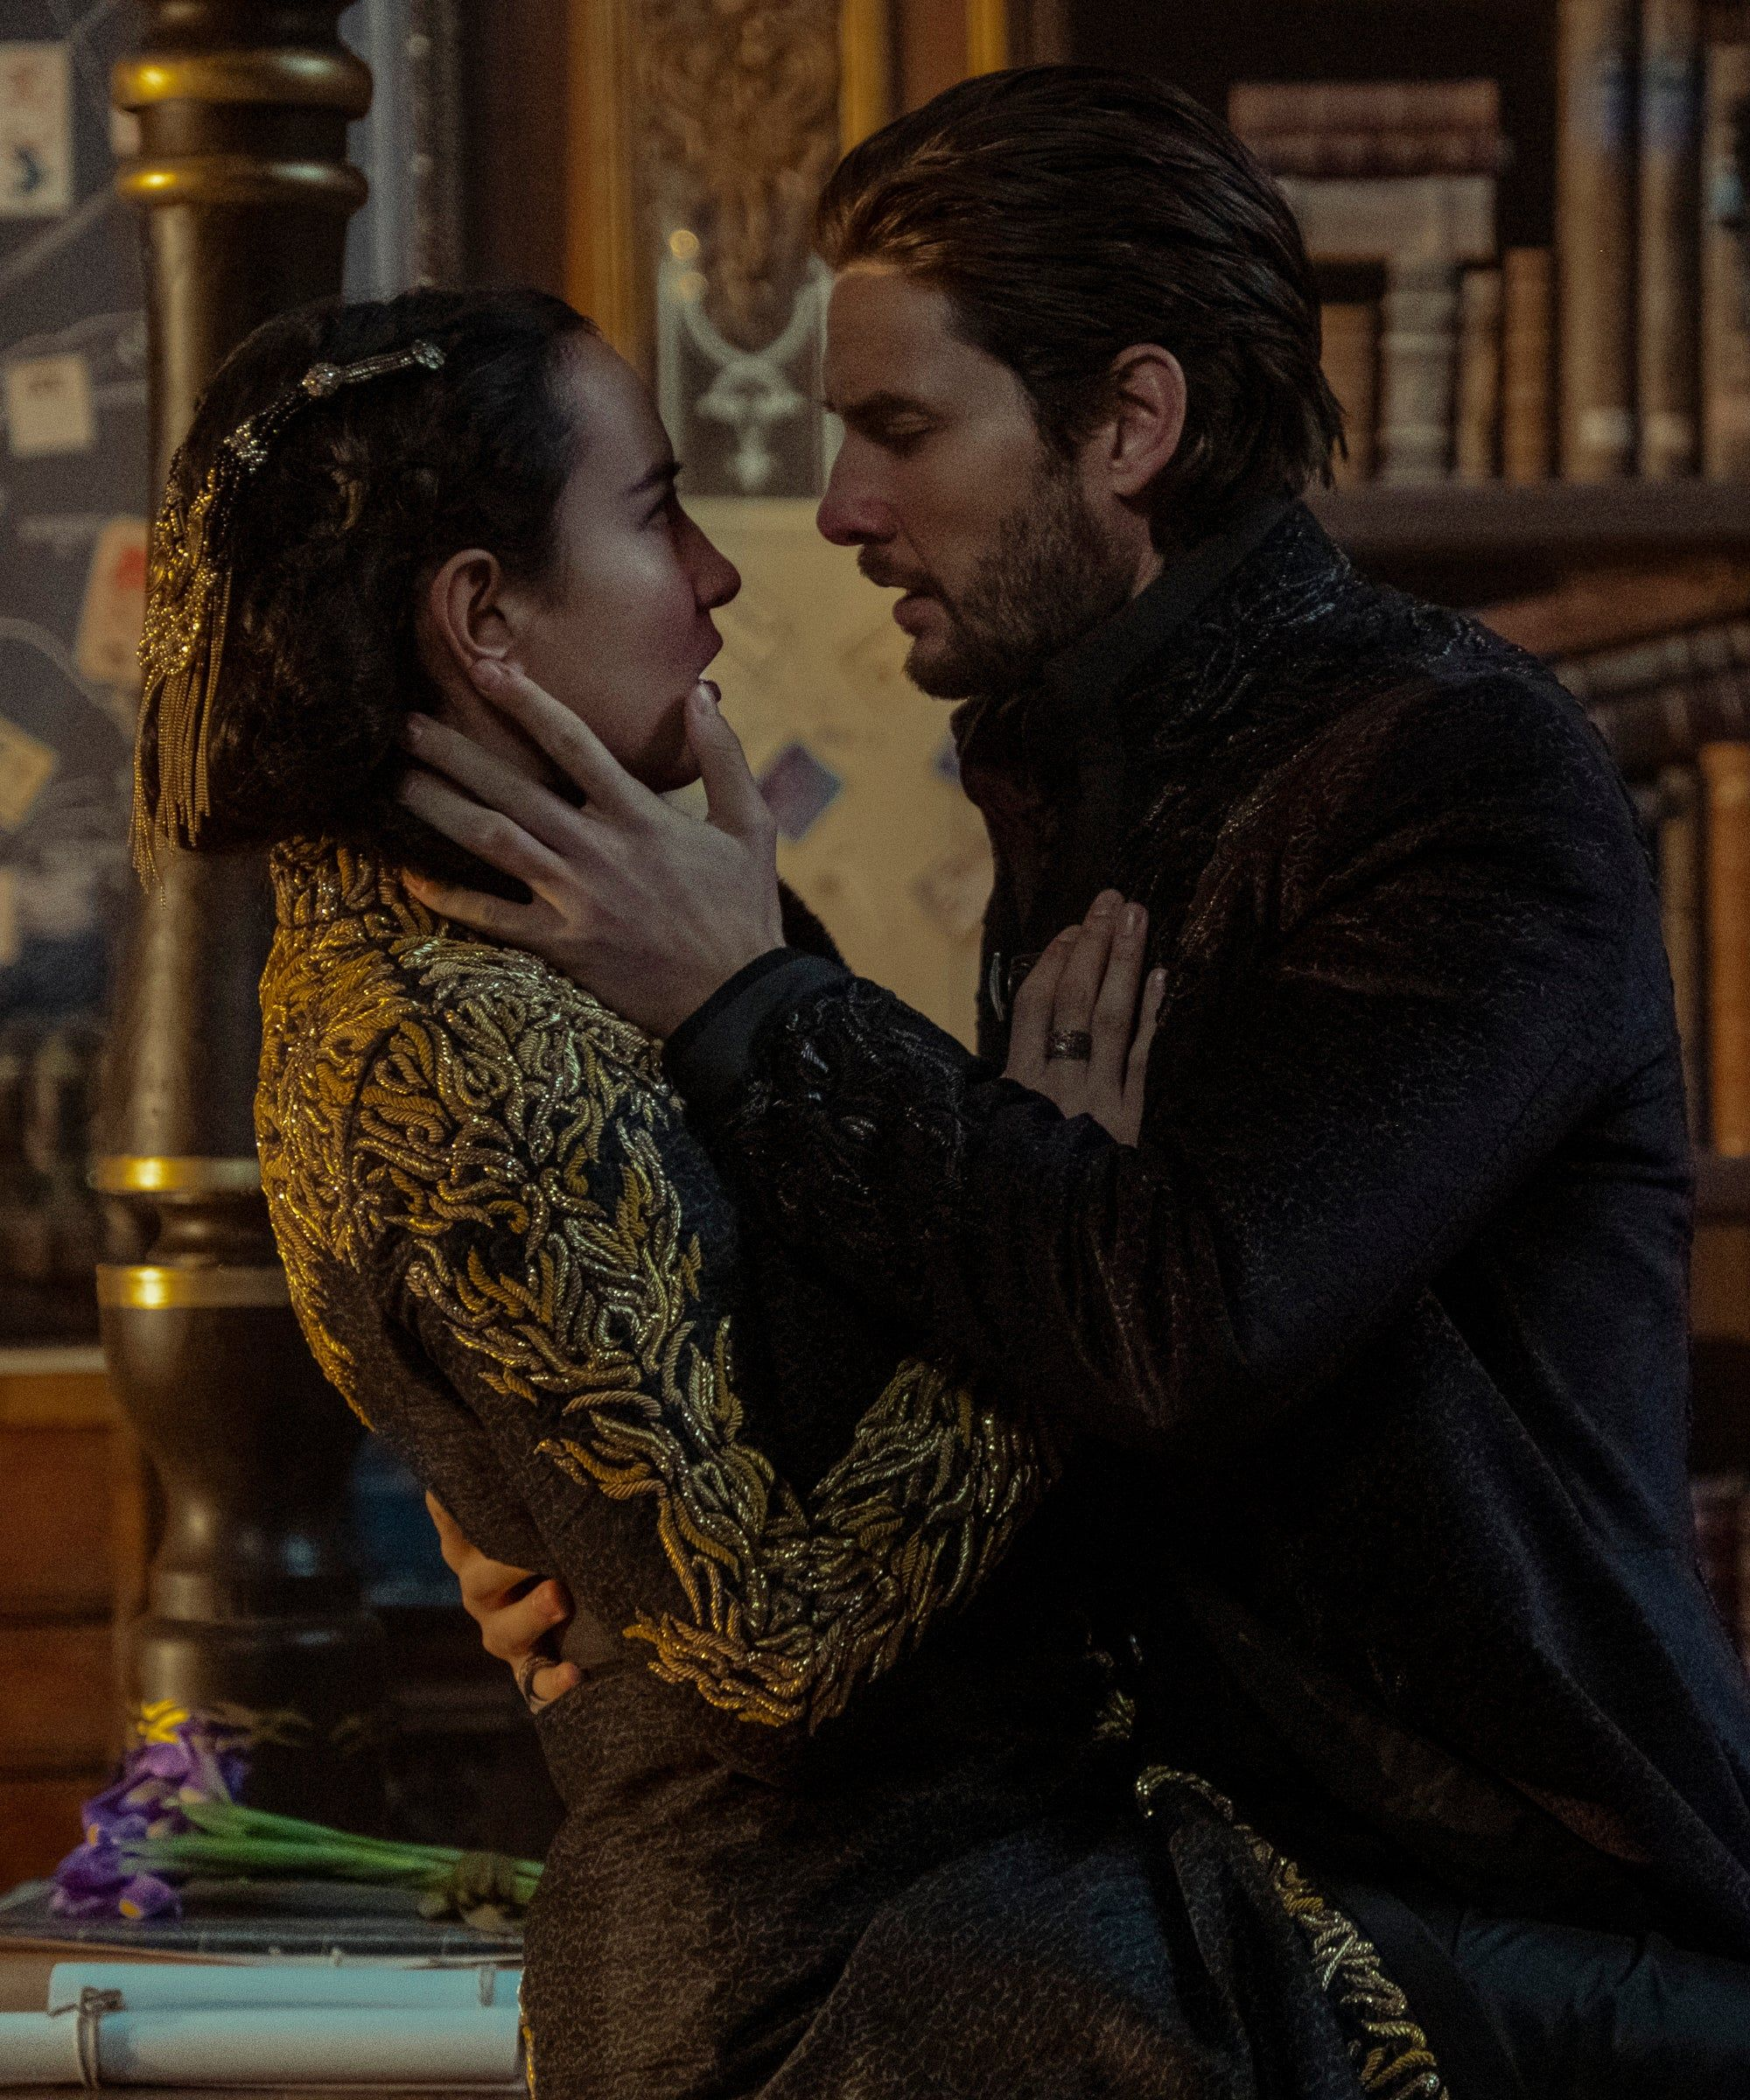 """15 Shows Like """"Shadow & Bone"""" To Try Now That You've Caught The Fantasy Bug"""